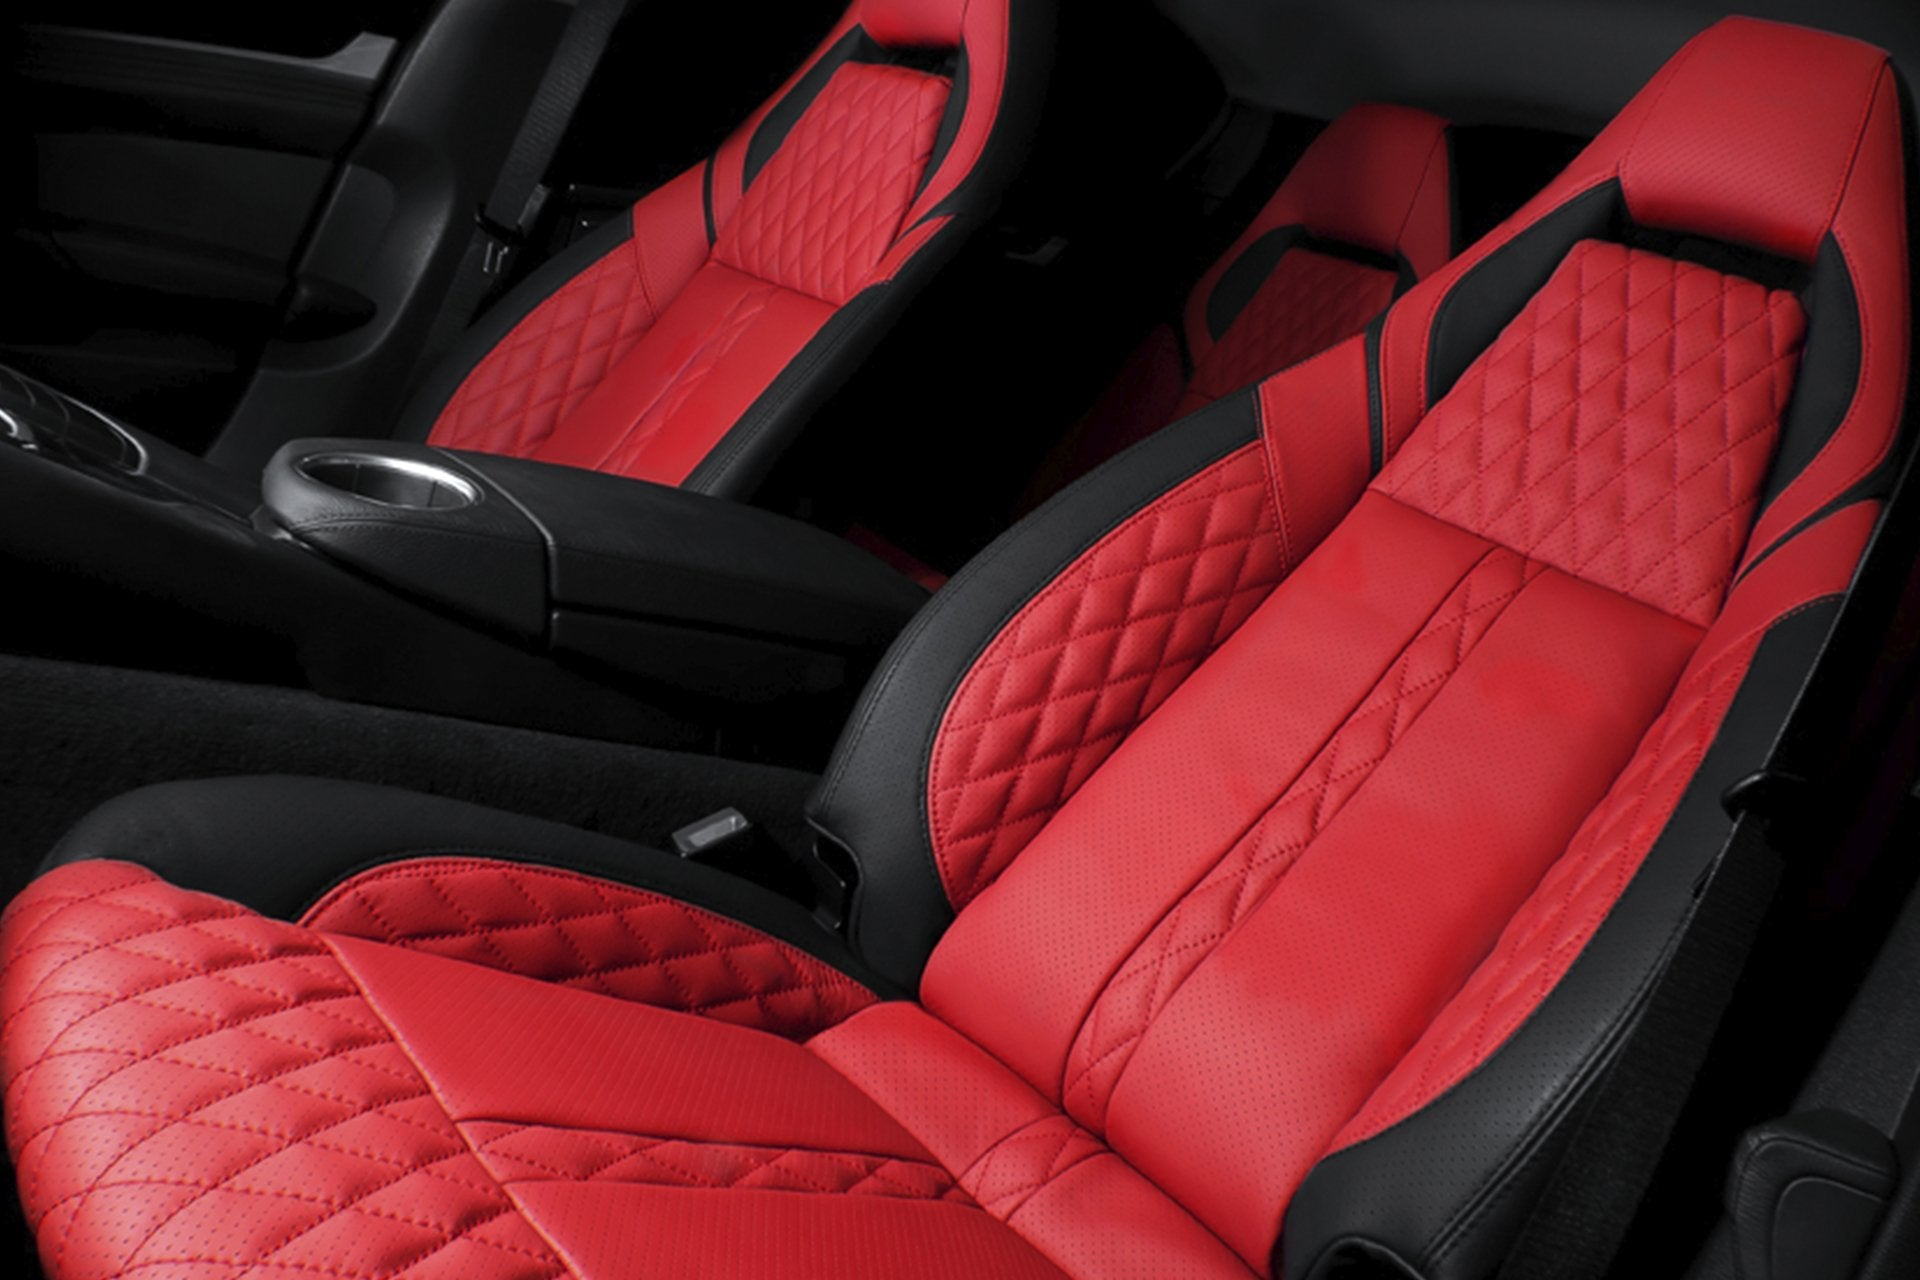 Porsche Panamera (2010-2016) Leather Interior by Kahn - Image 1245